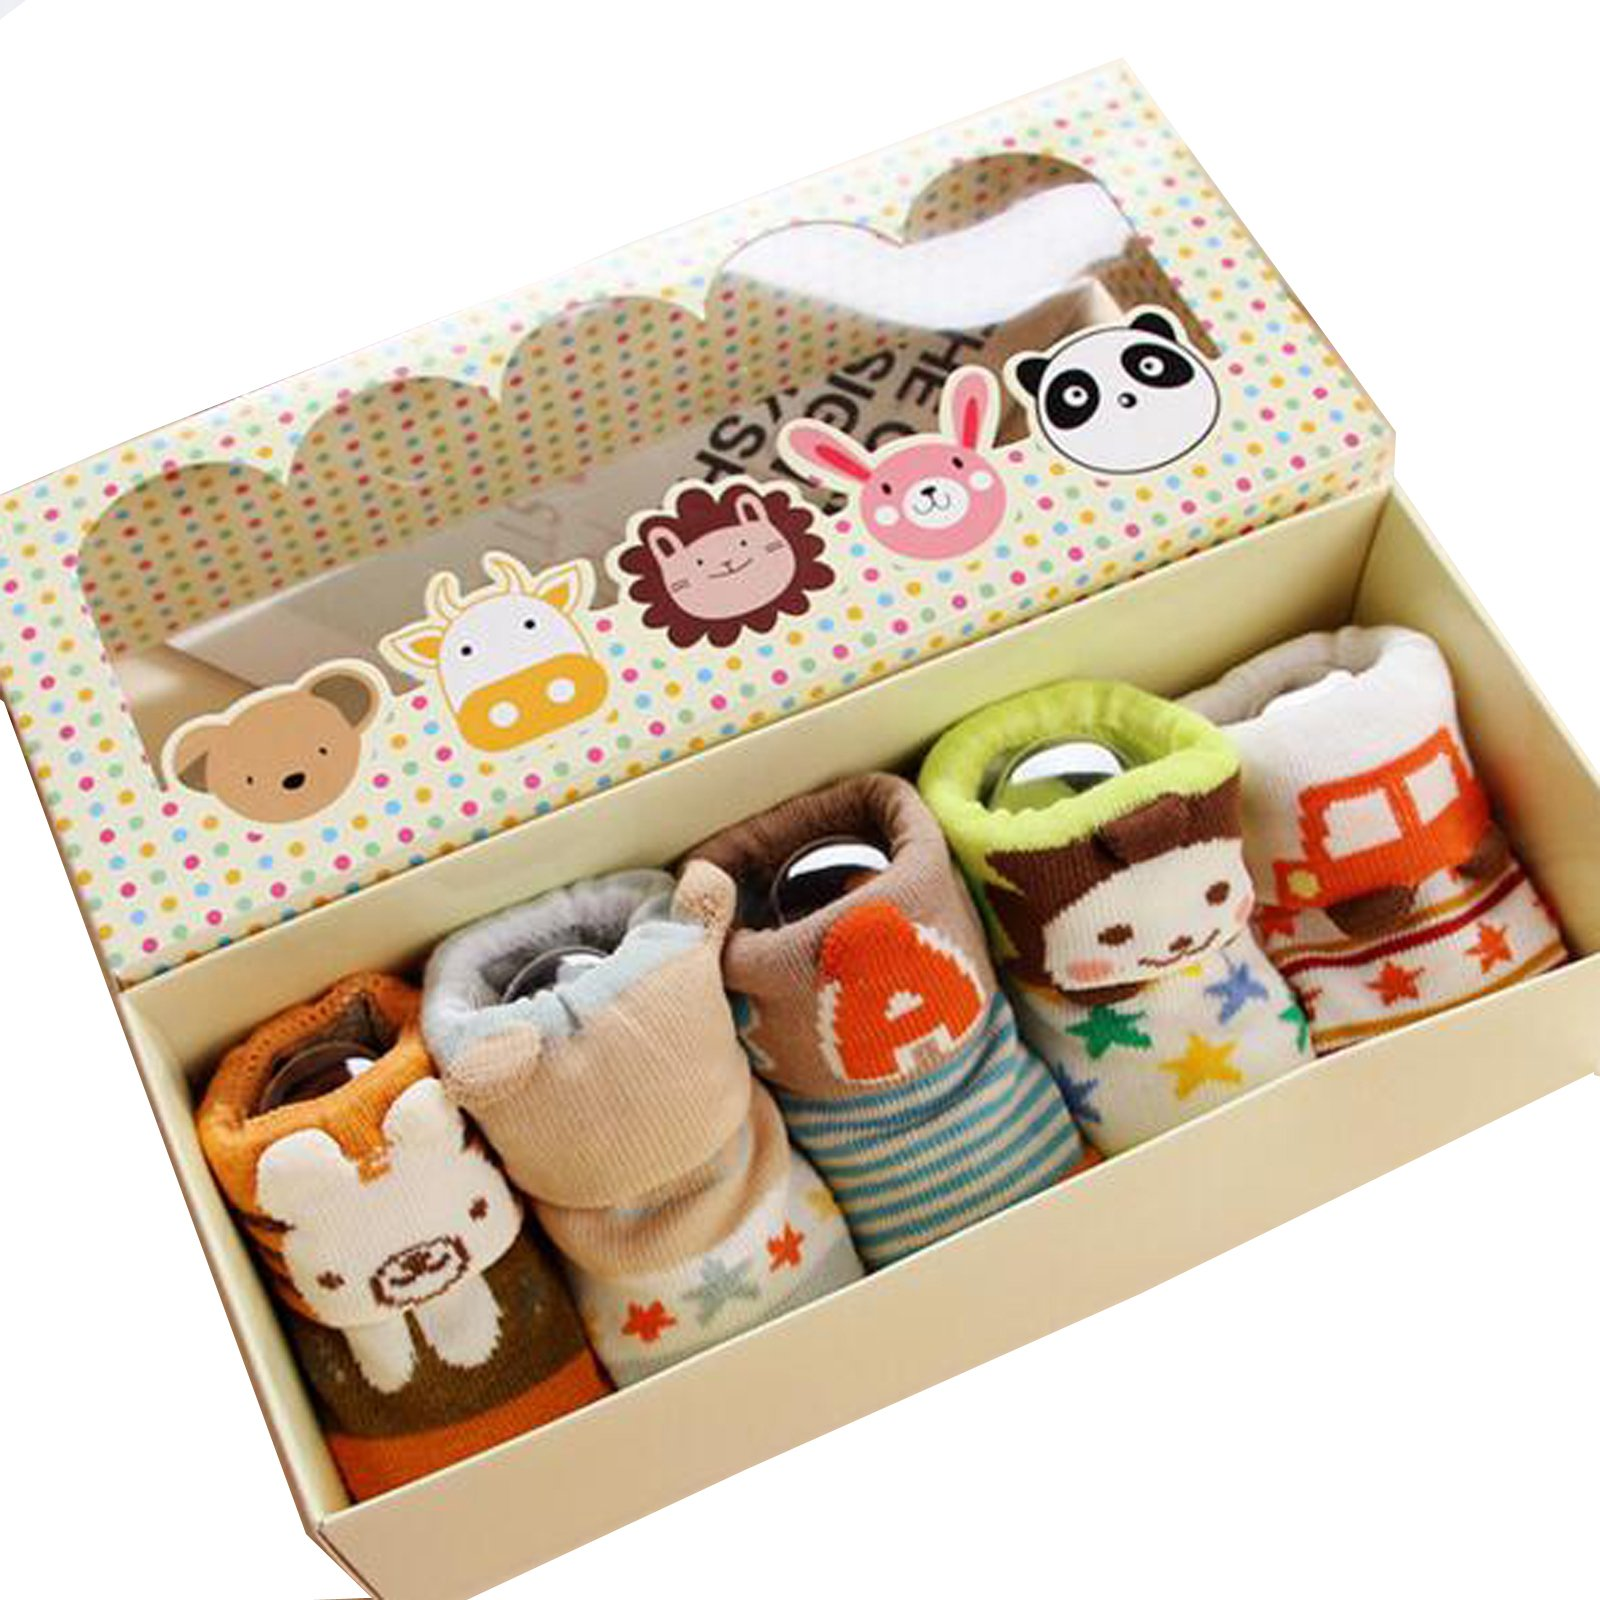 Fly-love® 5pairs Animal Non-Skid Slip Toddler Socks Cotton Unisex Baby Crew Sock 0-18 months With Box by love (Image #9)